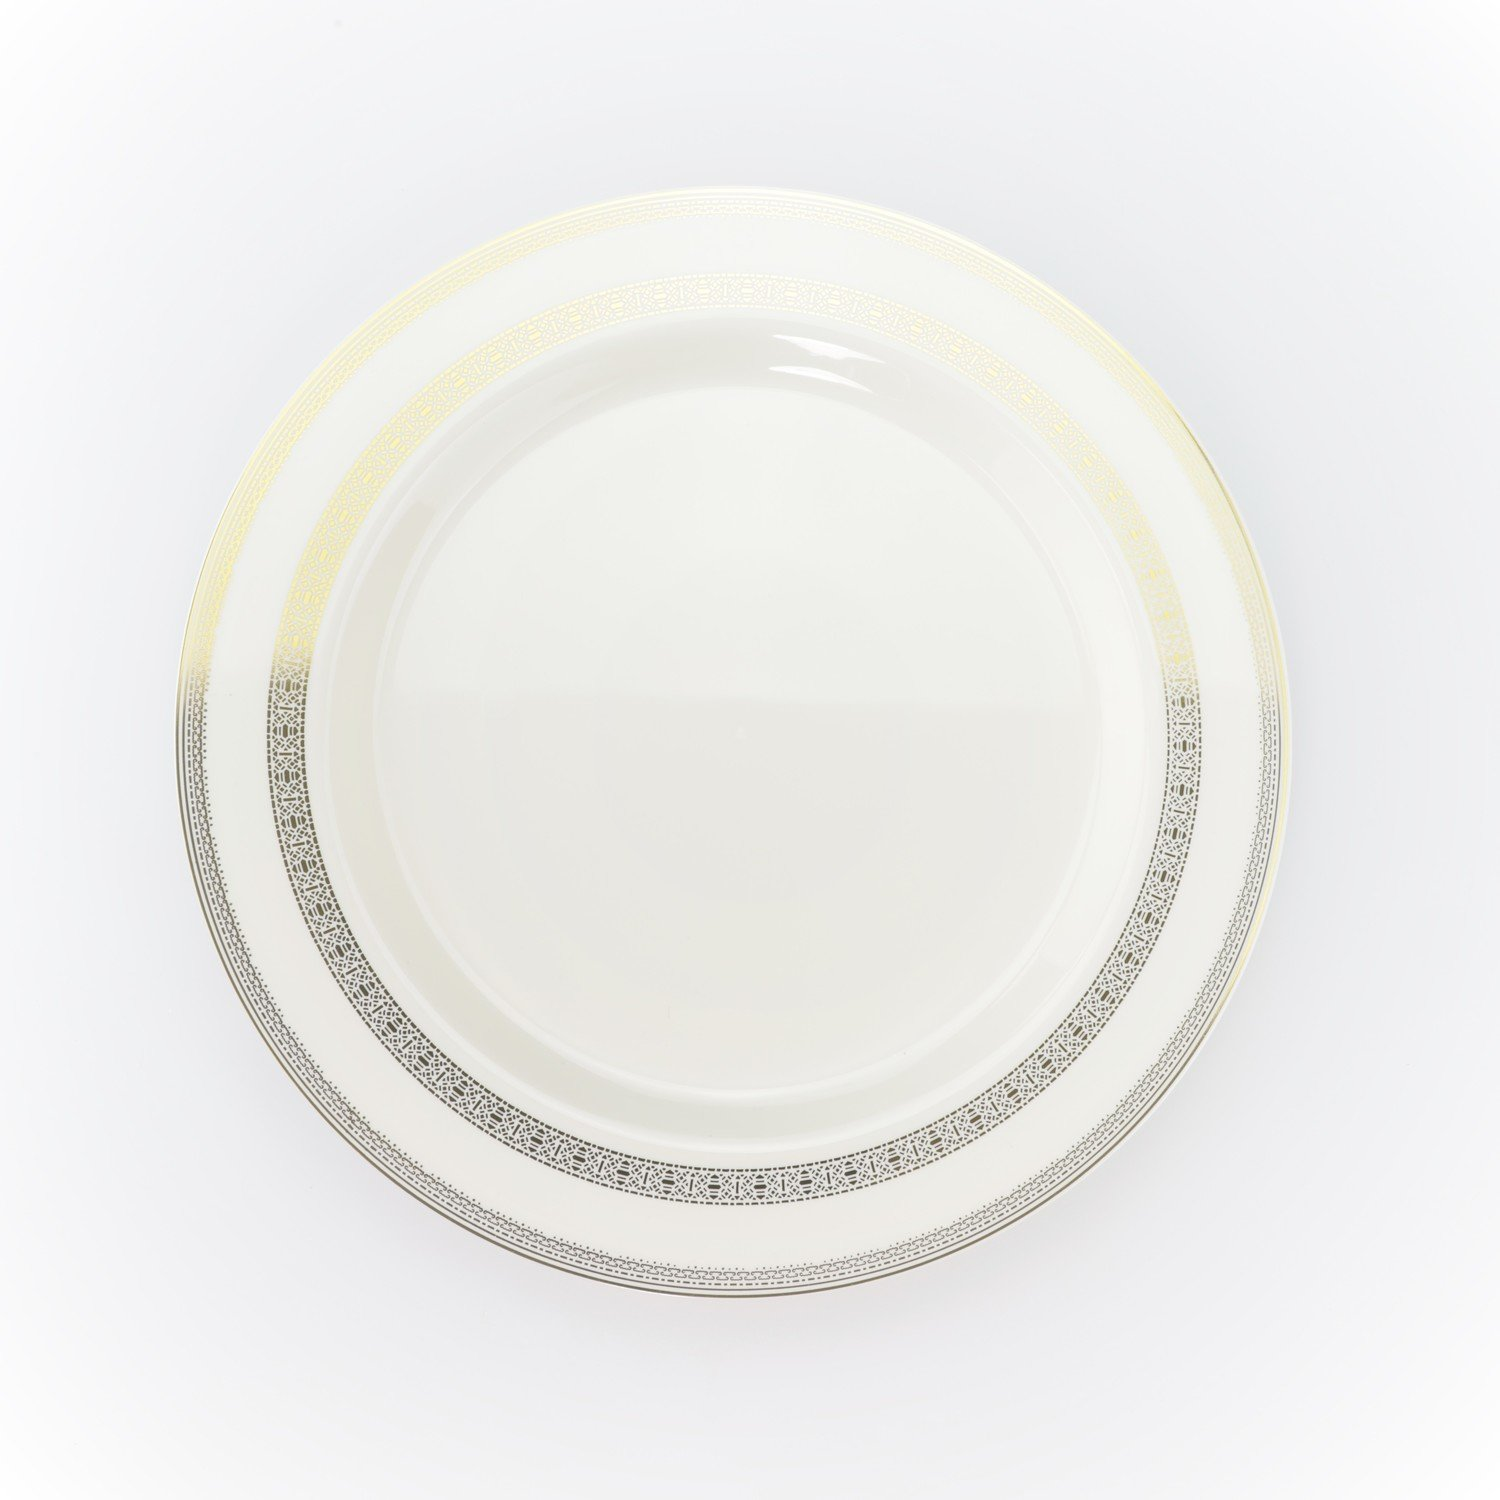 & Wedding China u0026 Plastic Ware - ART Catering u0026 Events Company